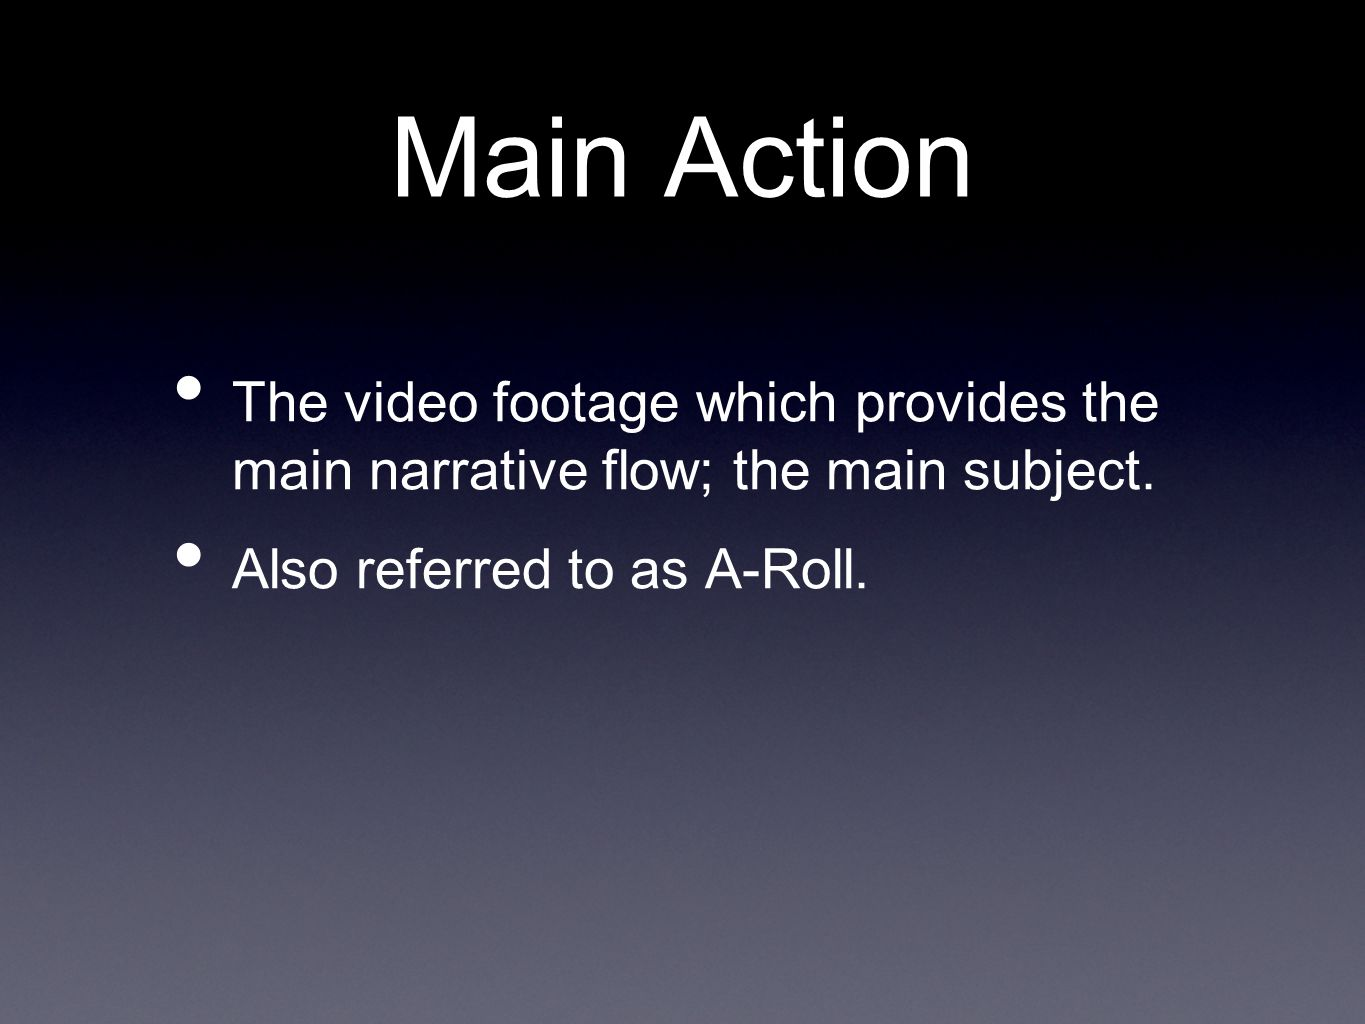 Main Action The video footage which provides the main narrative flow; the main subject.